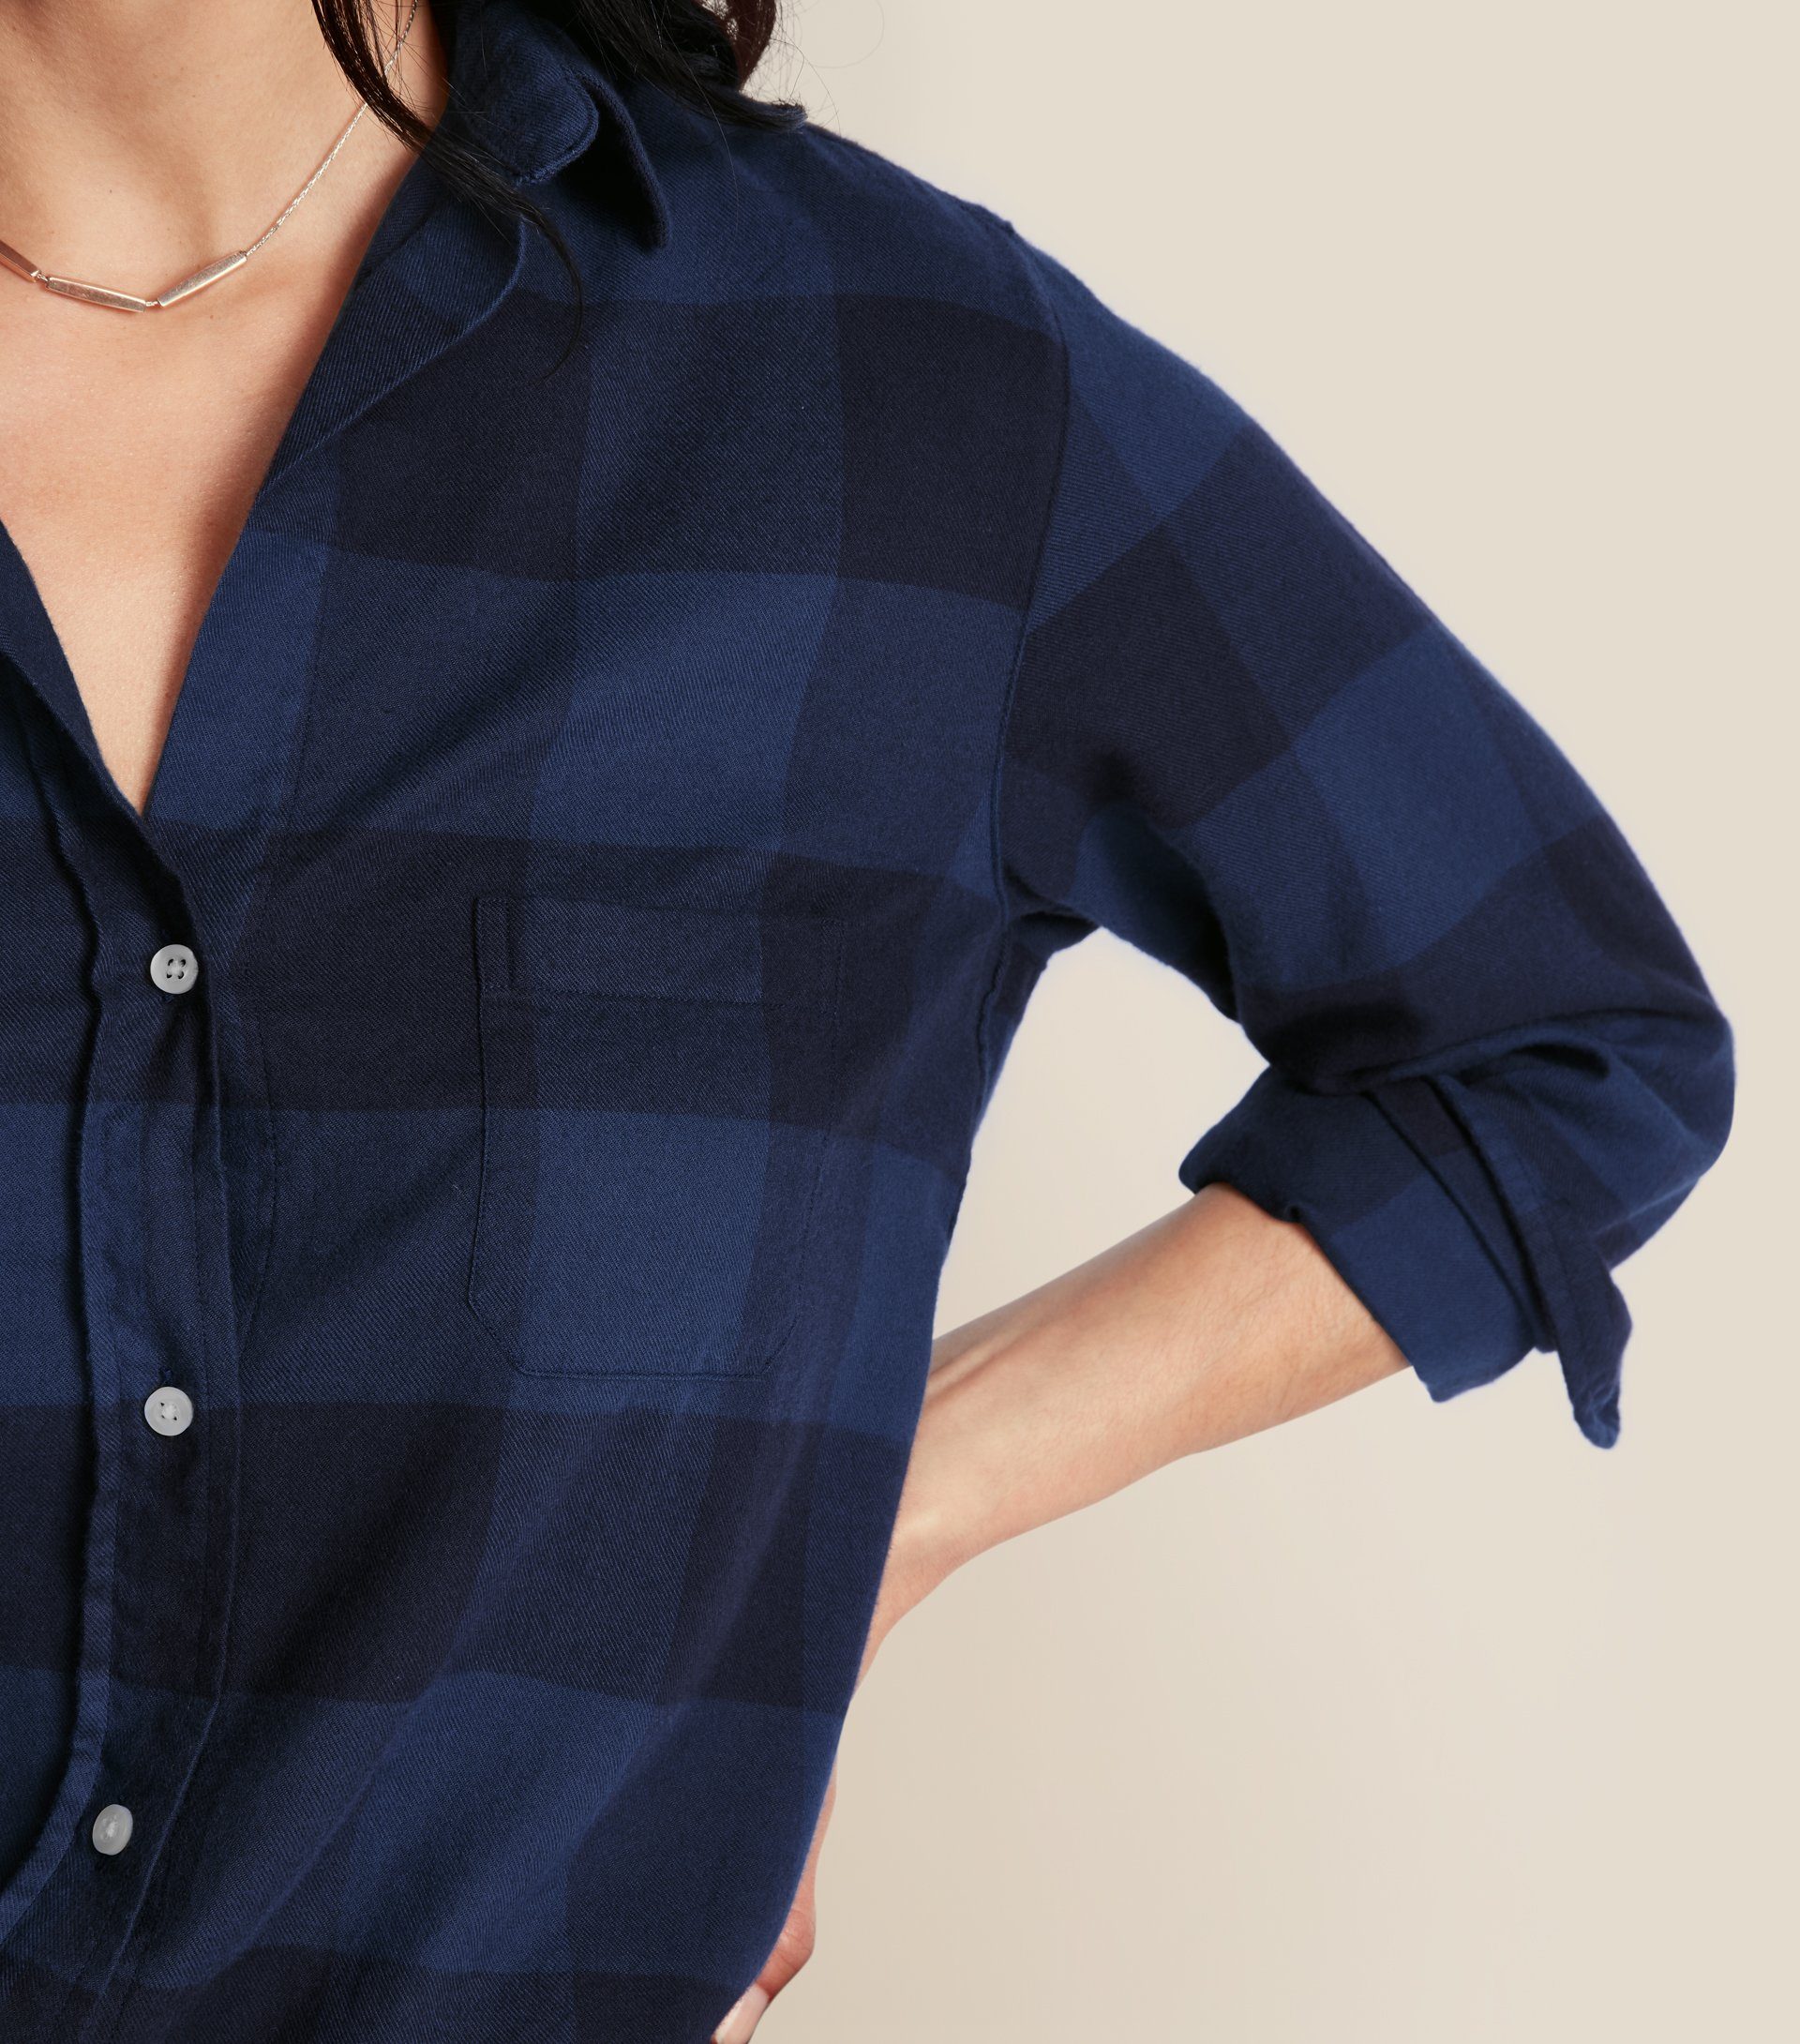 Image of The Hero Navy and Slate Check, Feathered Flannel